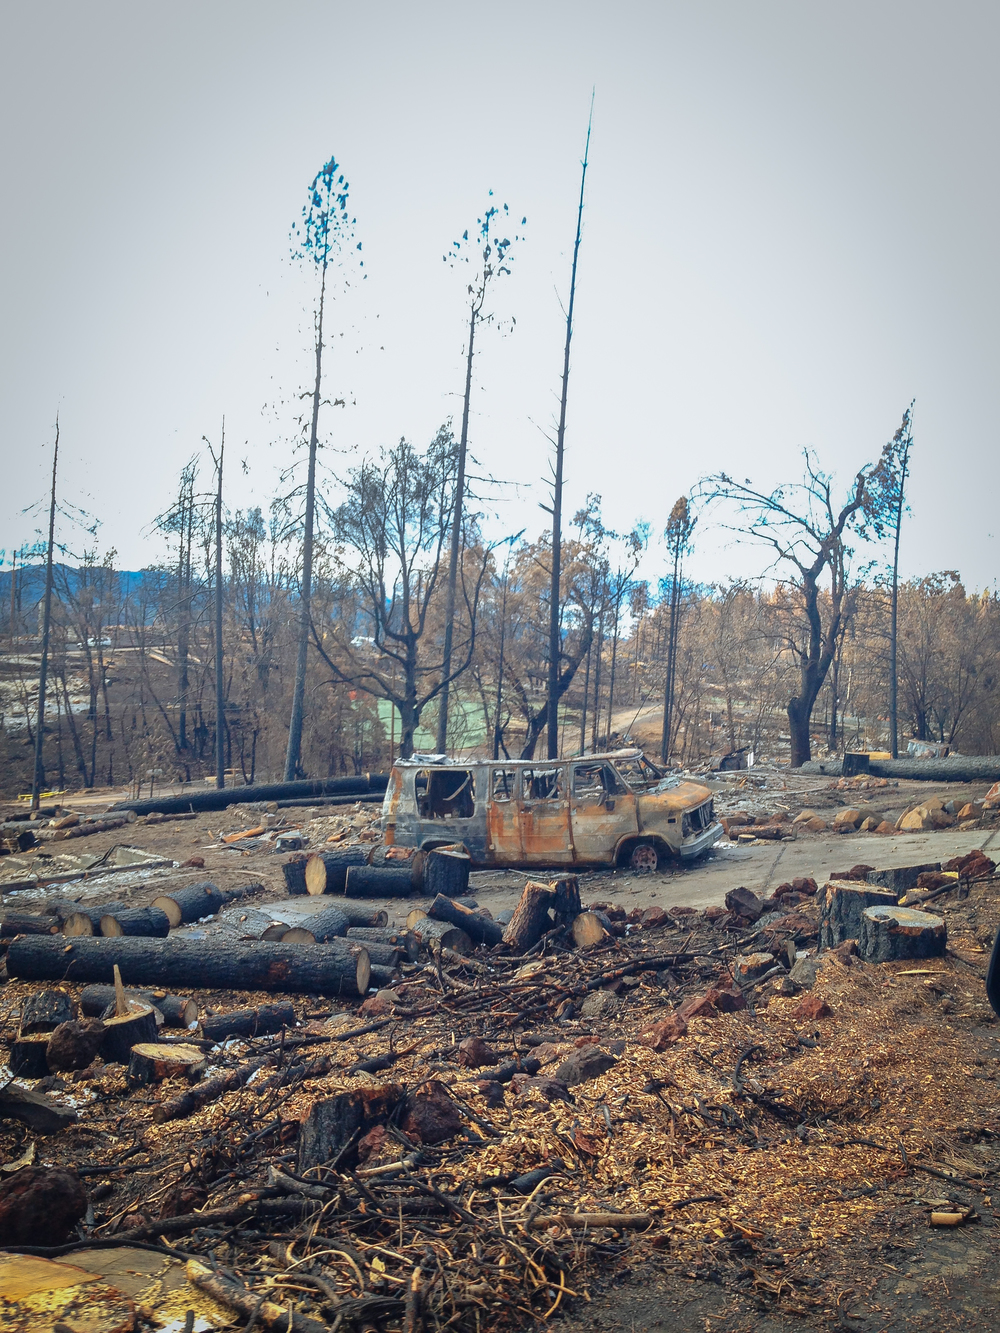 Destruction on Cobb Mountain from The Valley Fire - four months after the fire.